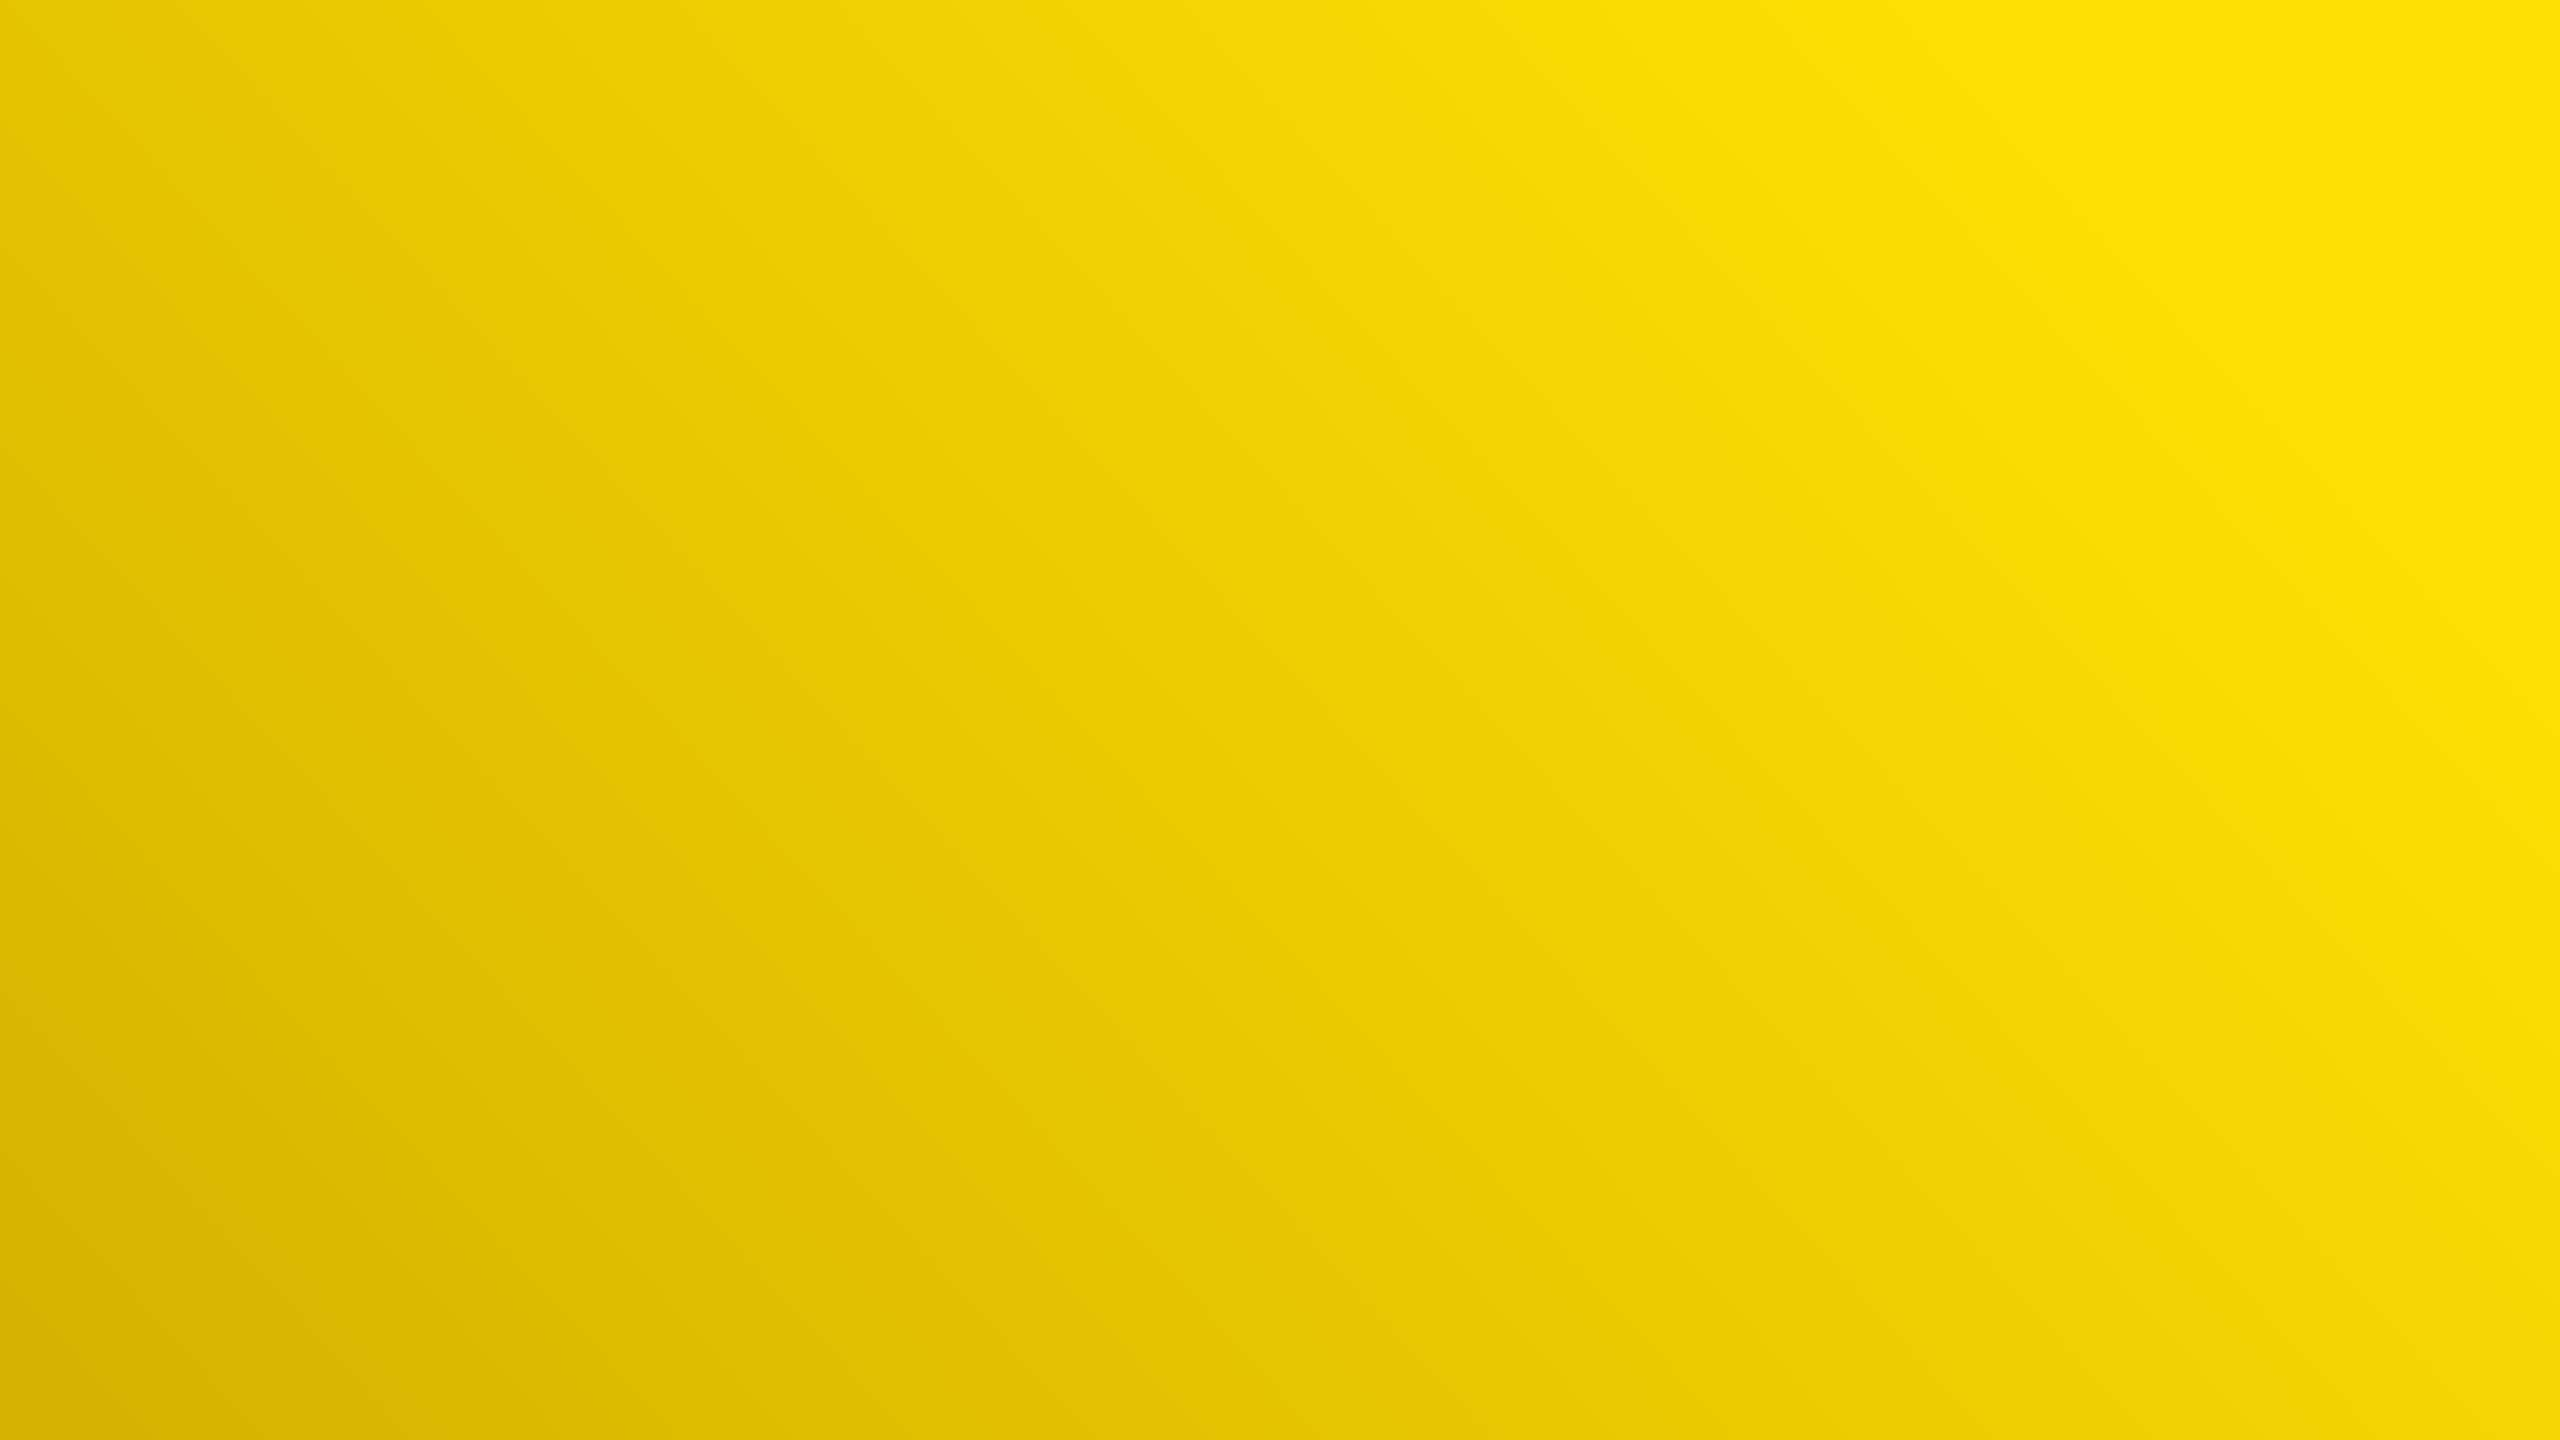 nokia81104g_05_tech-background.png